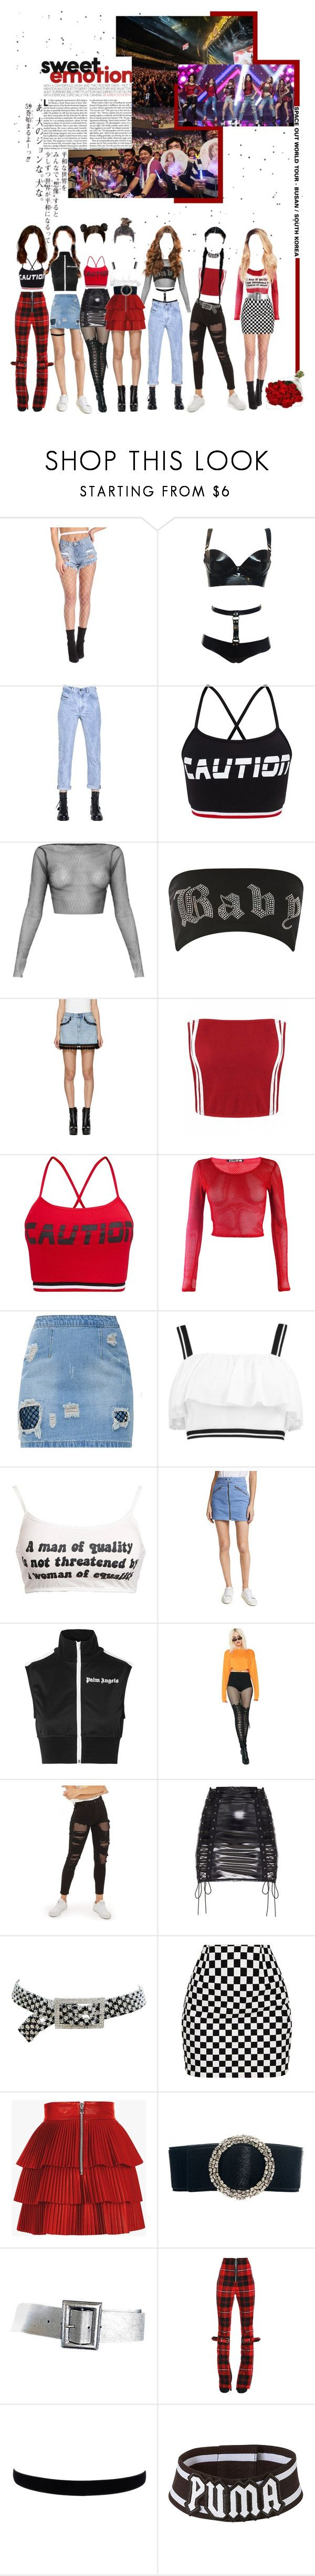 """«ROCKIT - SPACE OUT WORLD TOUR / BUSAN»"" by cw-entertainment ❤ liked on Polyvore featuring Diesel Black Gold, Jaded, Marc Jacobs, Boohoo, rag & bone/JEAN, Palm Angels, Poster Grl, Topshop, Kenneth Jay Lane and Balmain"